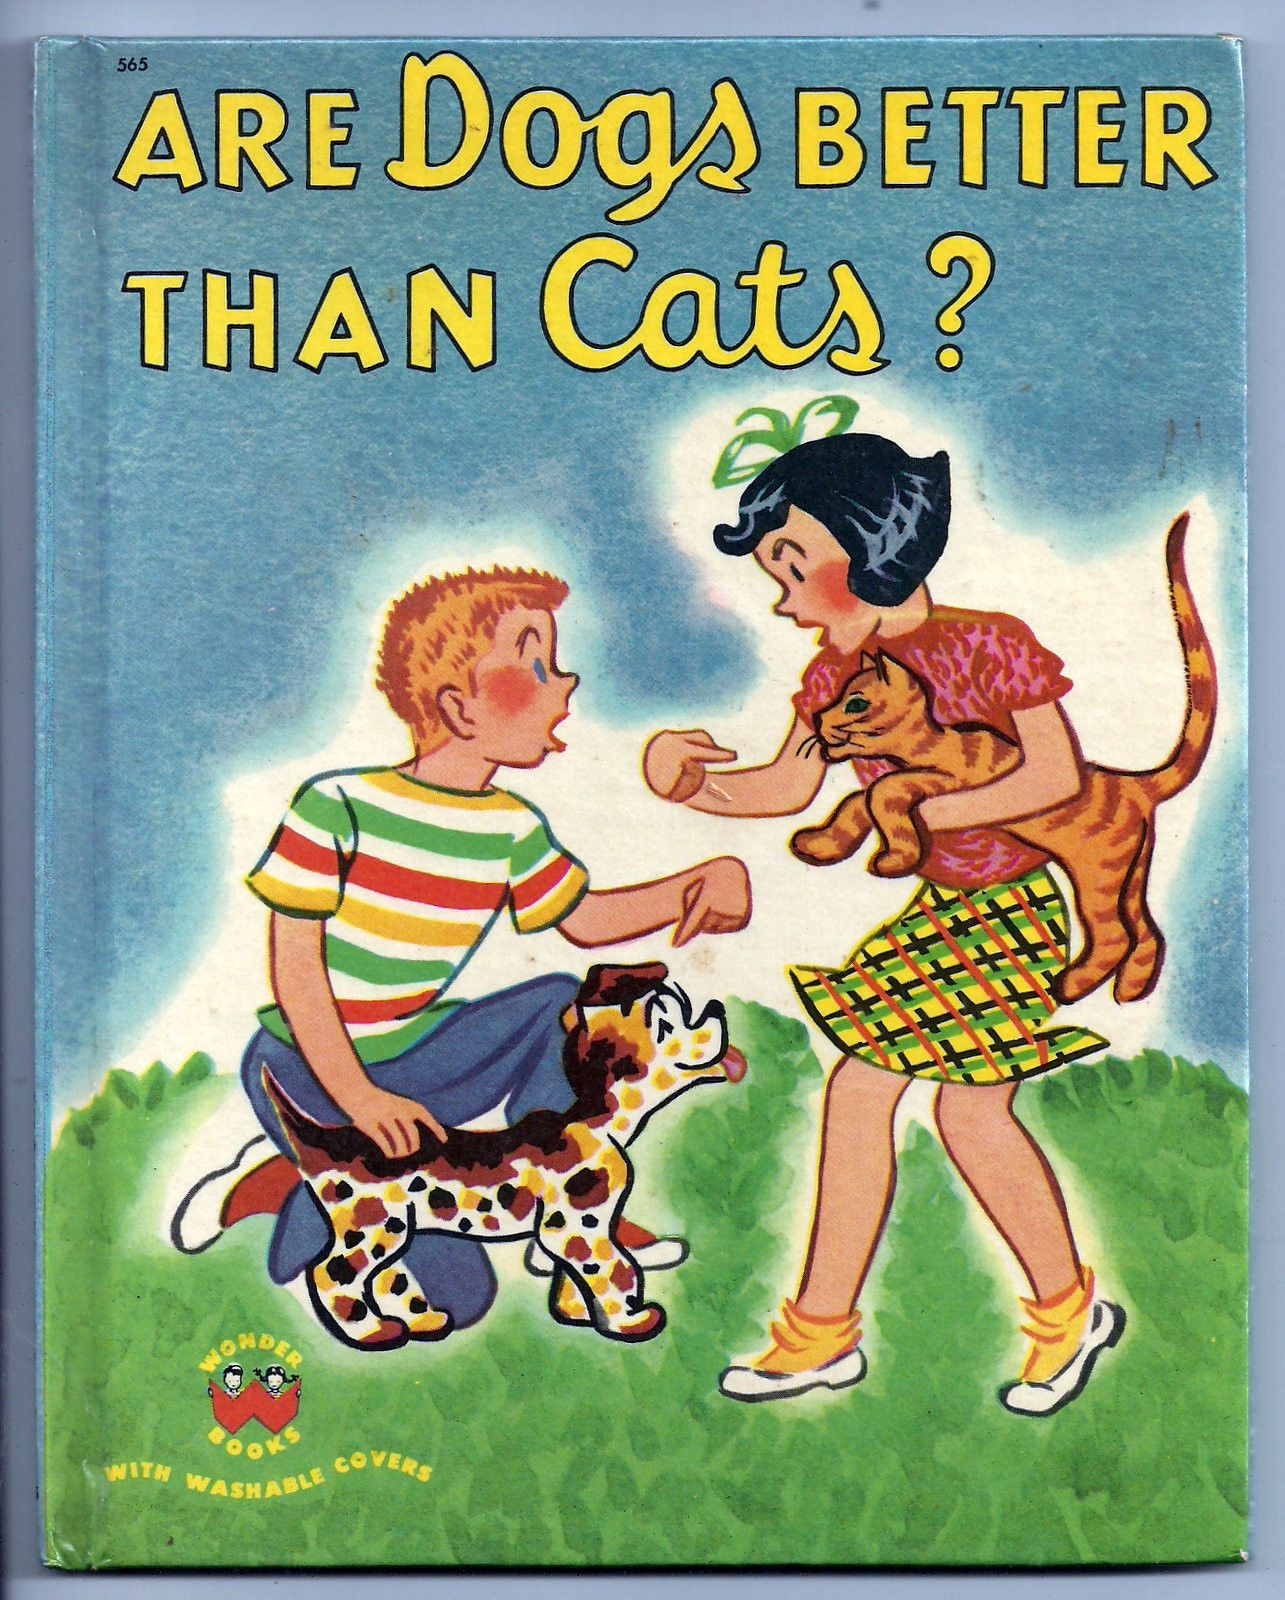 Are dogs better than cats? 1953 Wonder book, Vintage